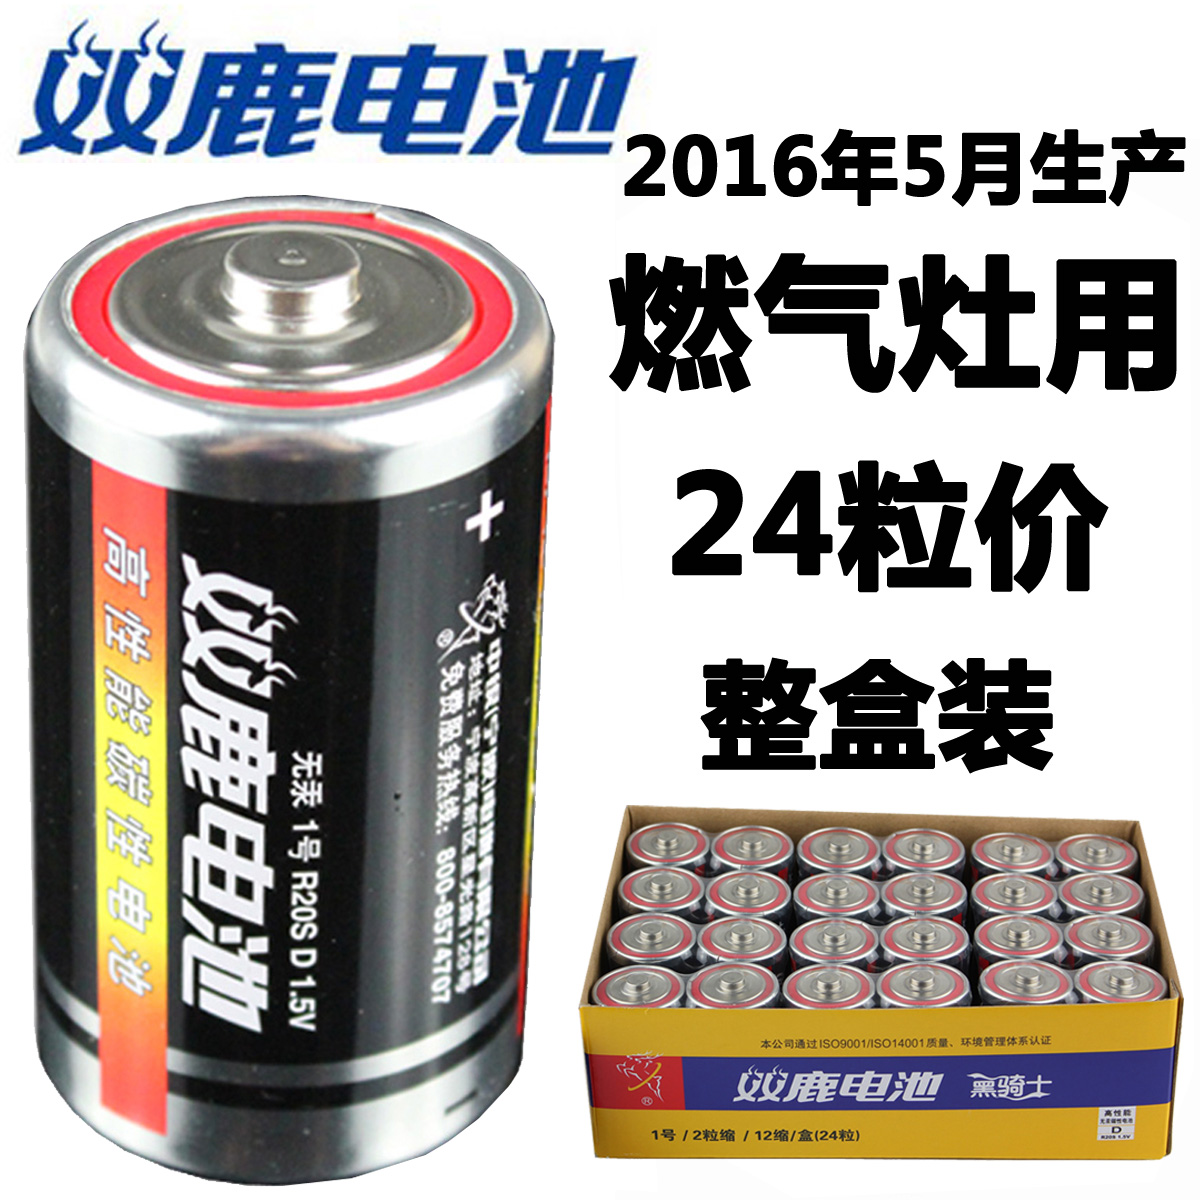 Deer battery on 1 carbon steel batteries section coal gas stove heater with a box of 24 more provinces Free shipping